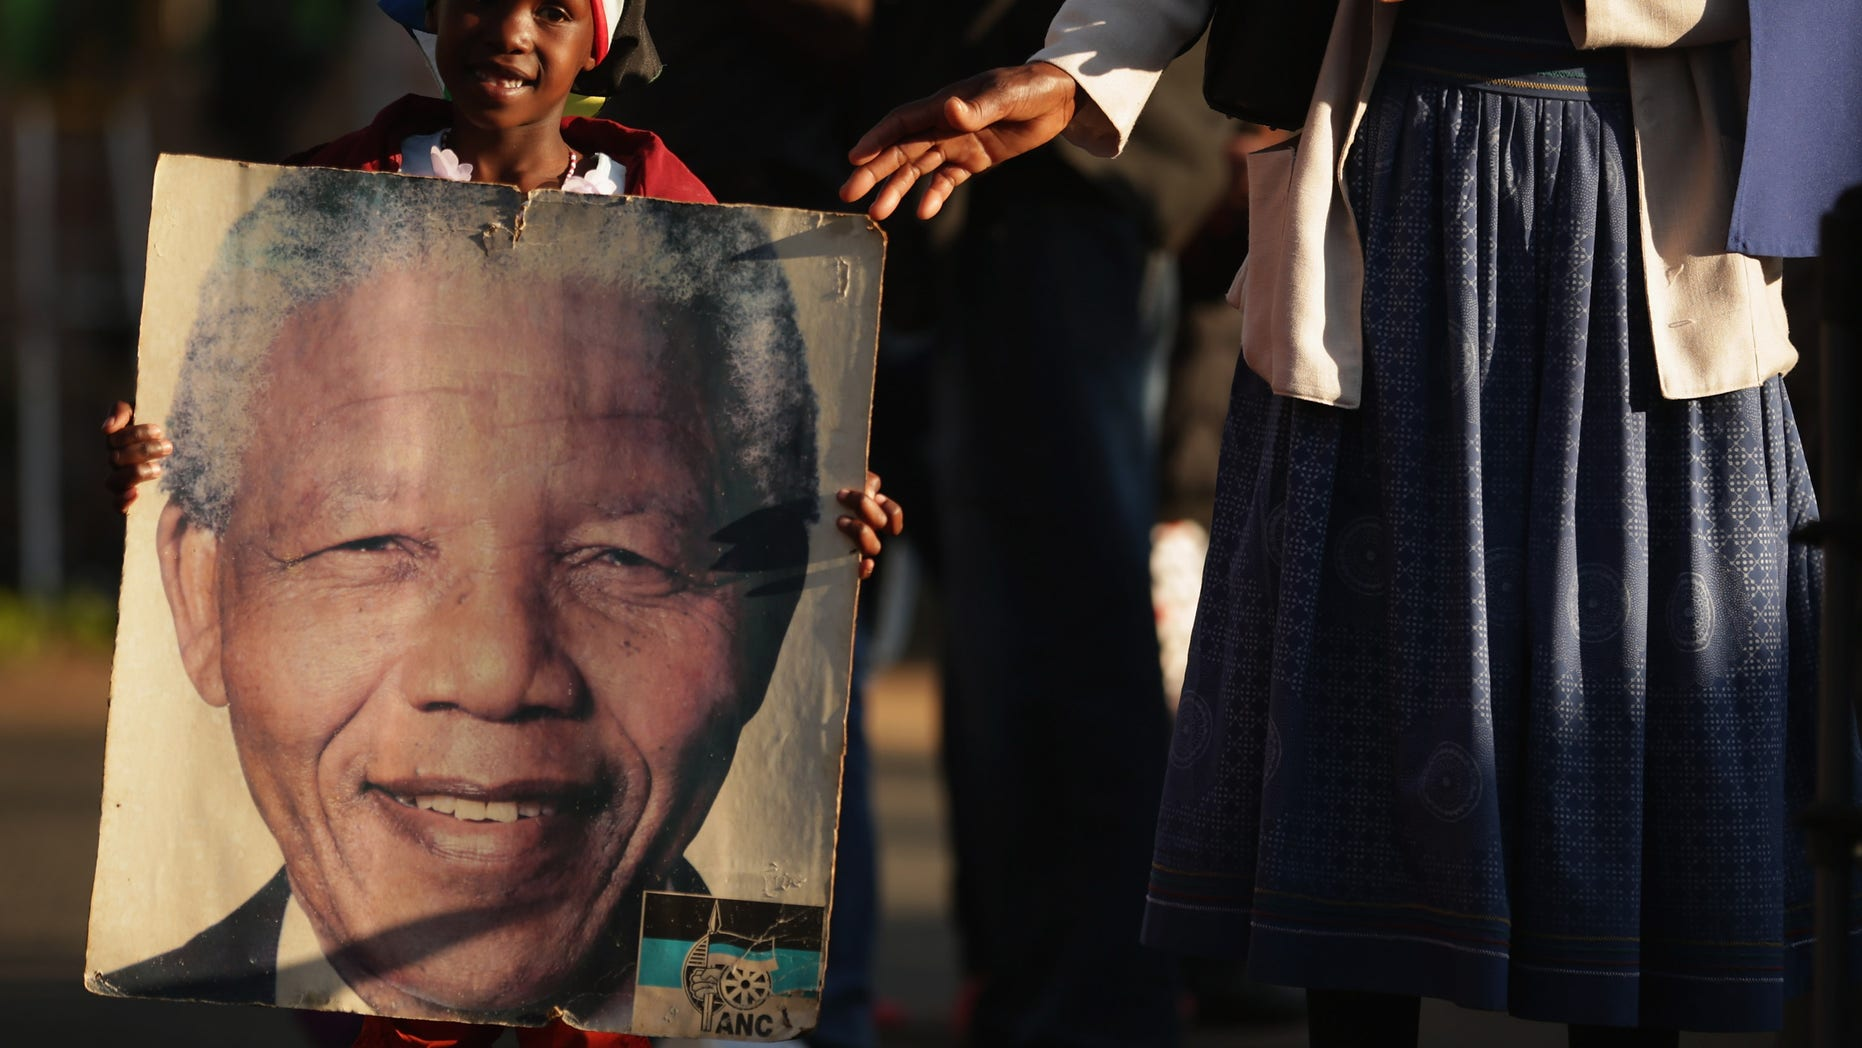 PRETORIA, SOUTH AFRICA - JULY 03:  Lehlogonolo Nkosi, 7, carries a photograph of former South African President Nelson Mandela outside the Mediclinic Heart Hospital where Mandela is being treated for a recurring lung infection July 3, 2013 in Pretoria, South Africa. The anti-apartheid icon and Nobel Peace Prize laureate has been in critical condition at the hospital for more than three weeks.  (Photo by Chip Somodevilla/Getty Images)